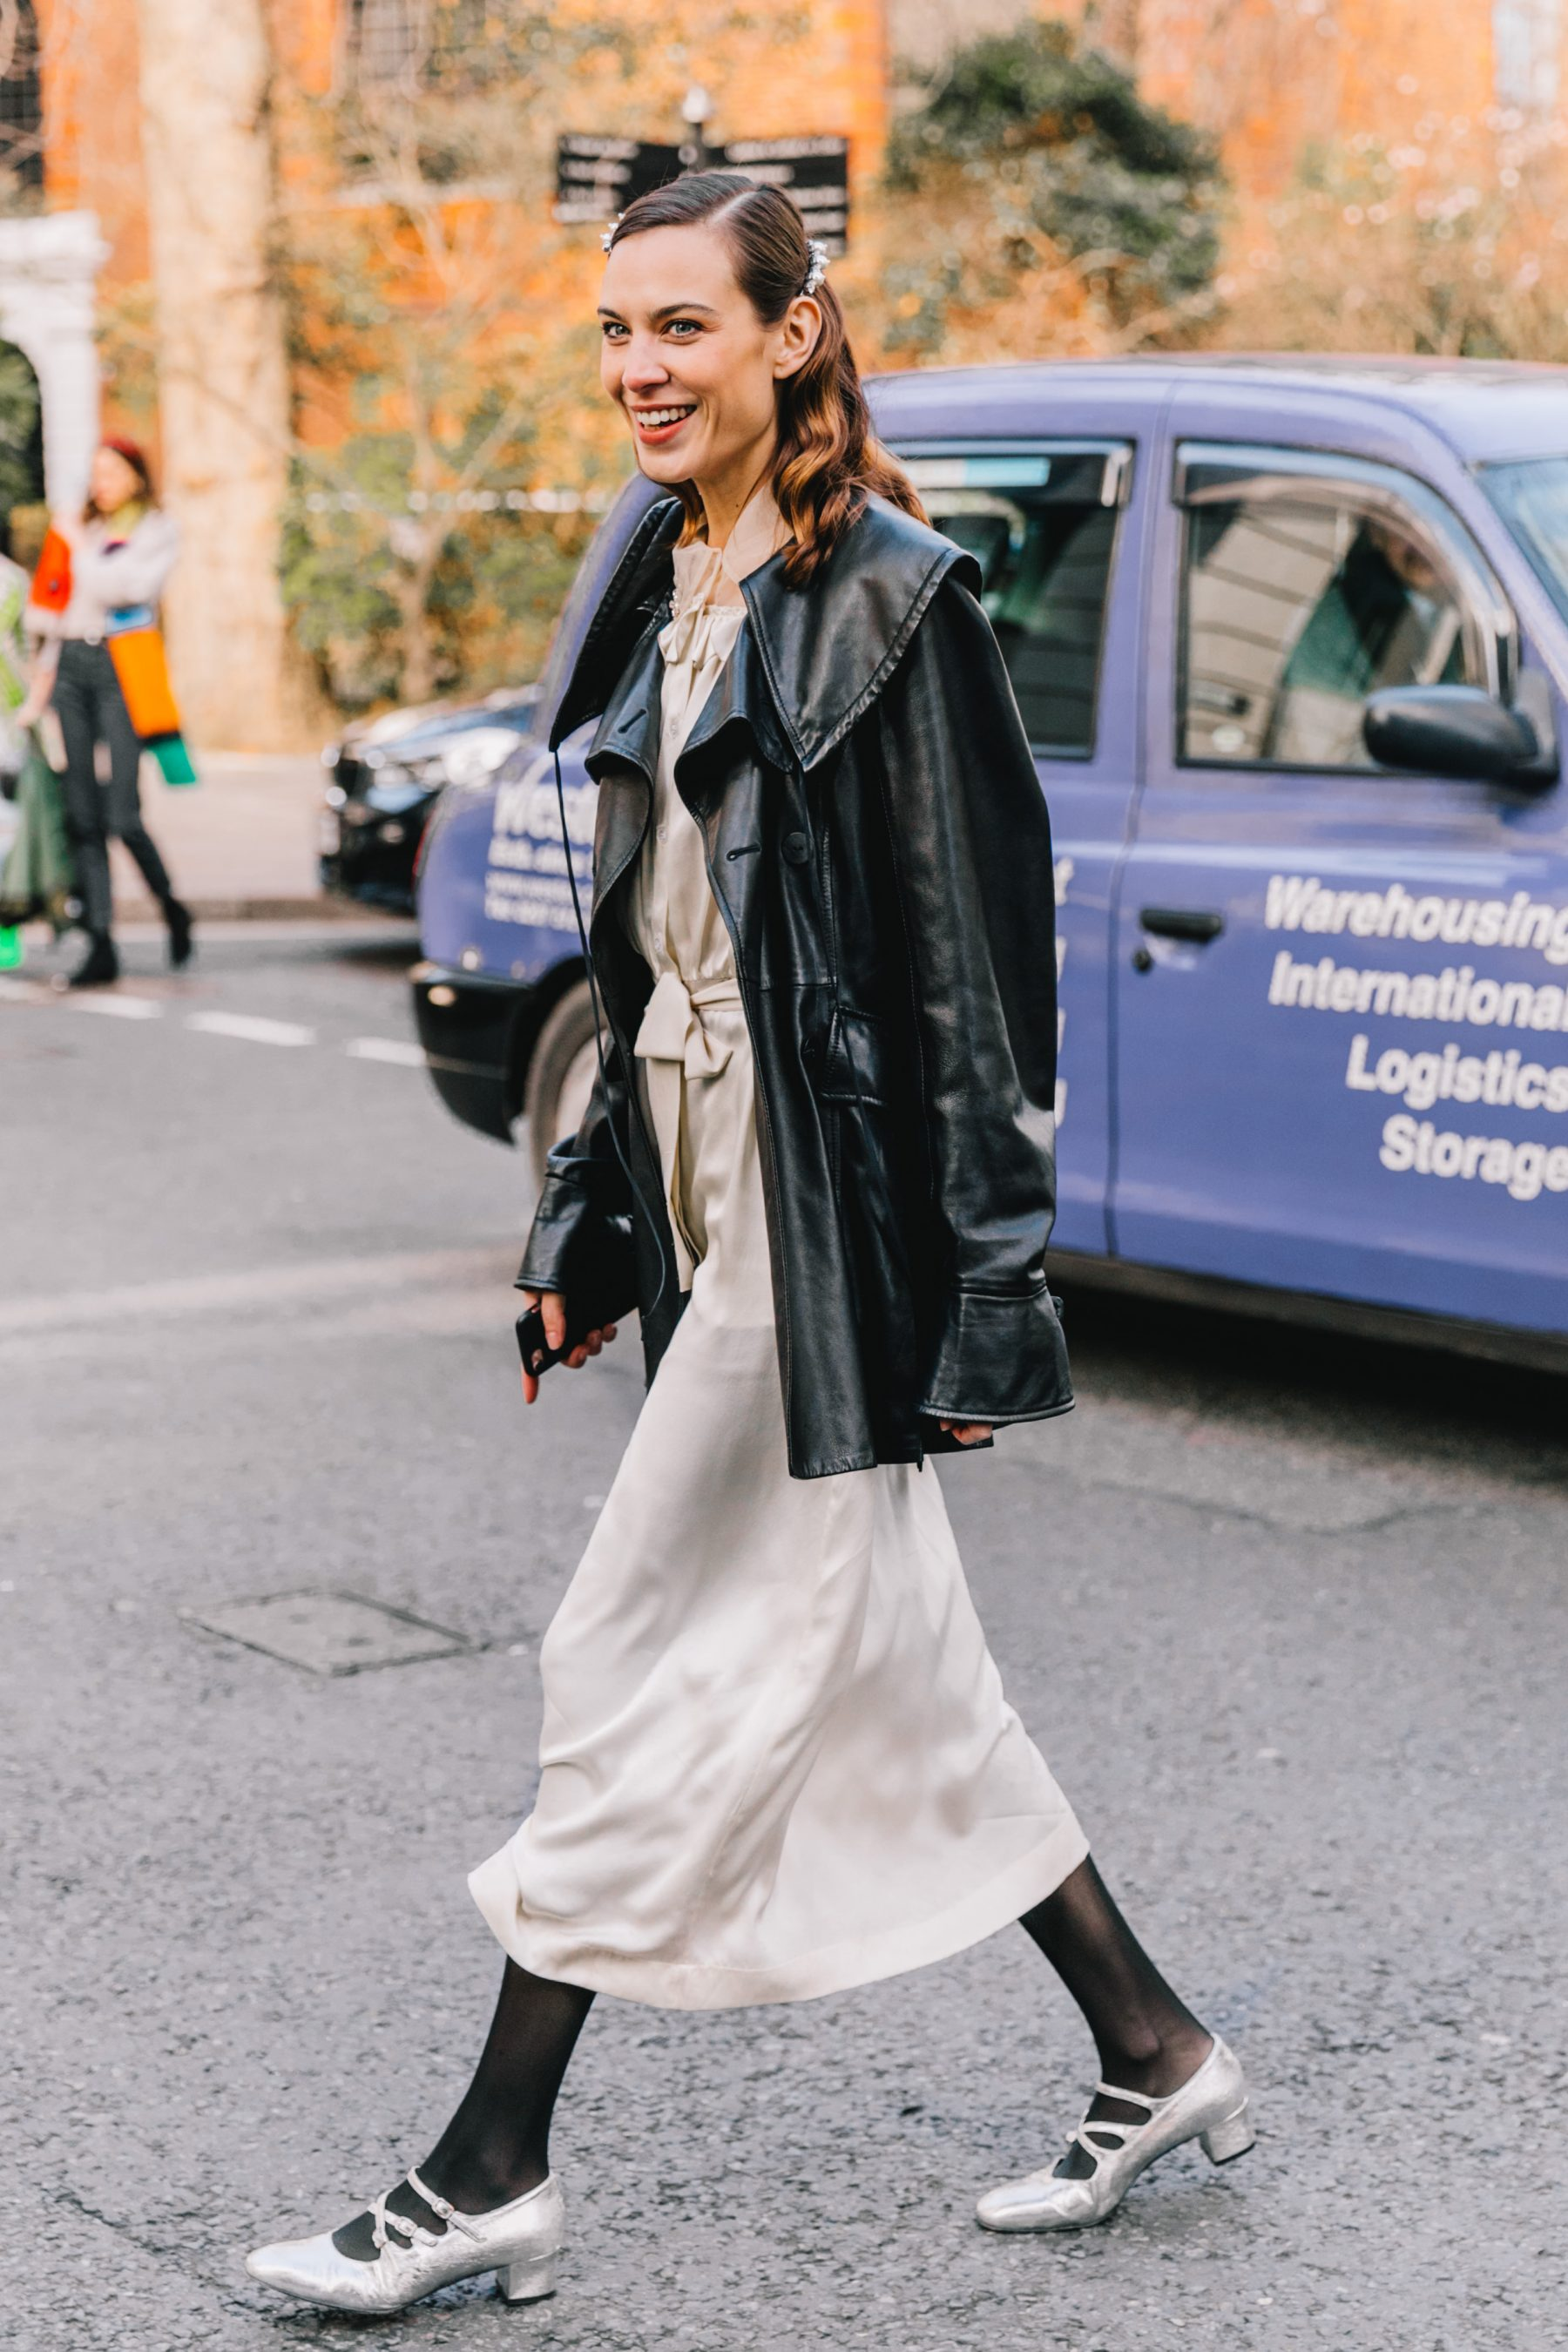 Lfw Fall 18 19 Street Style Ii Collage Vintage